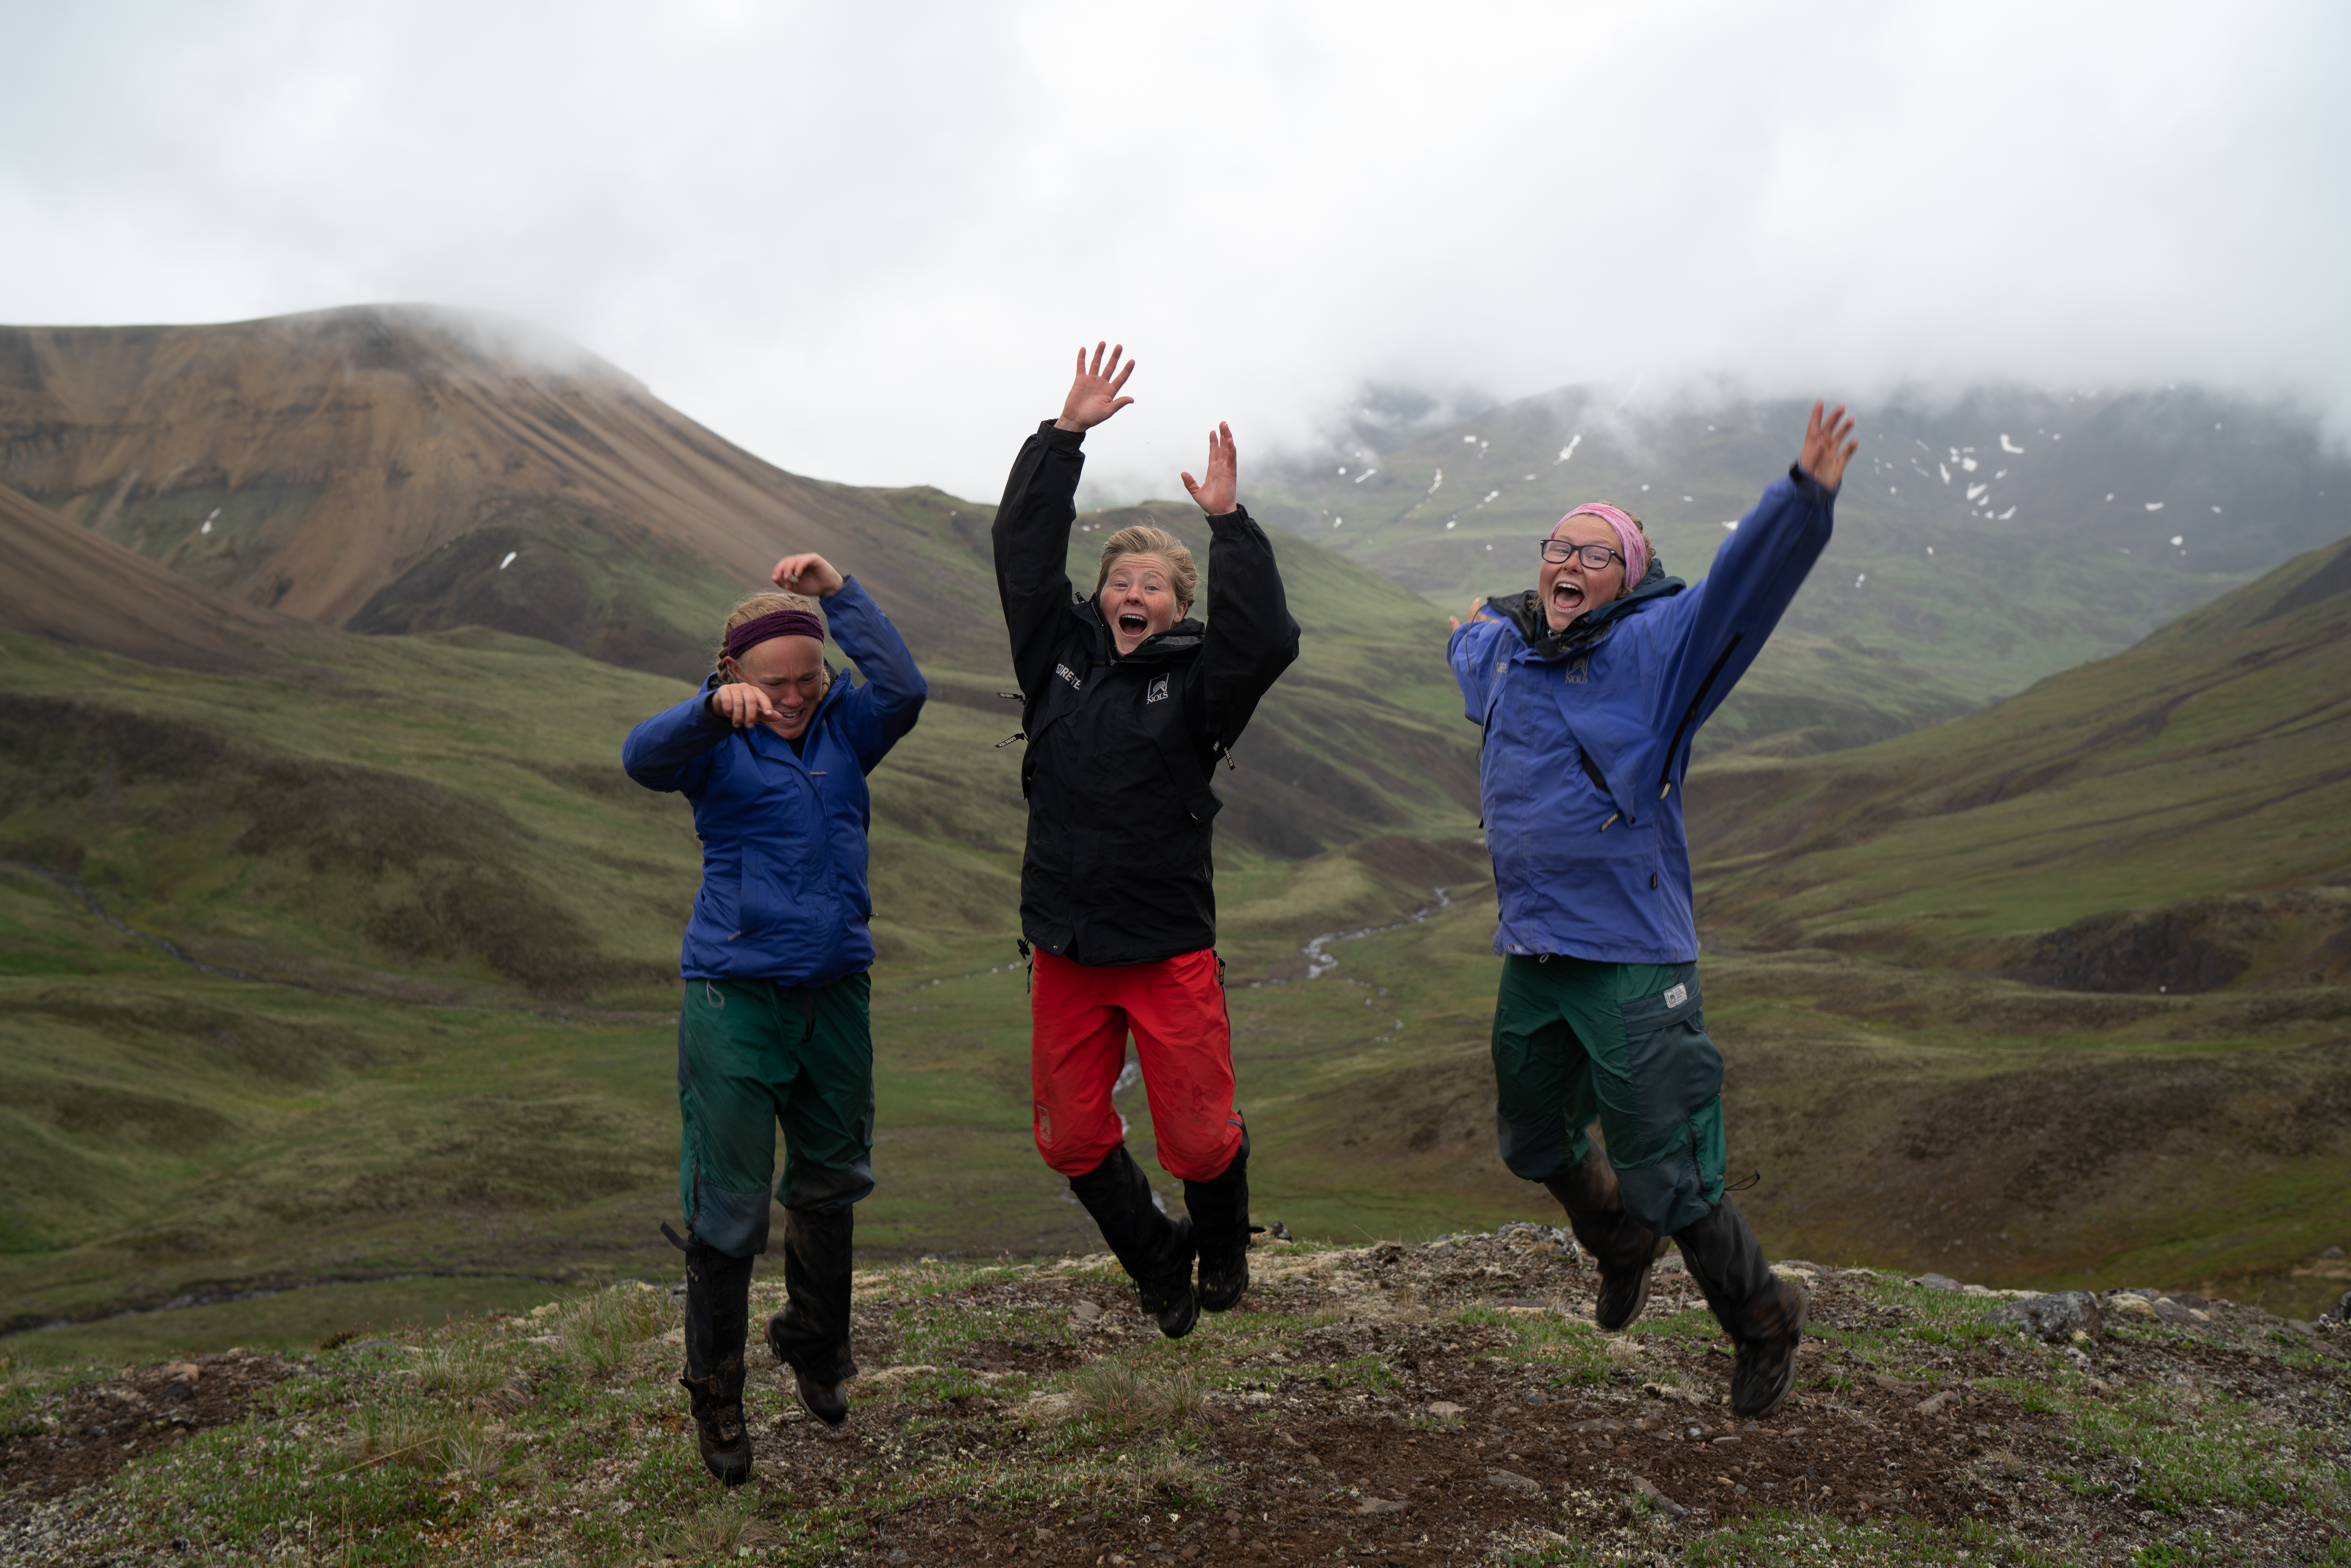 Students jump in the Alaskan mountains.